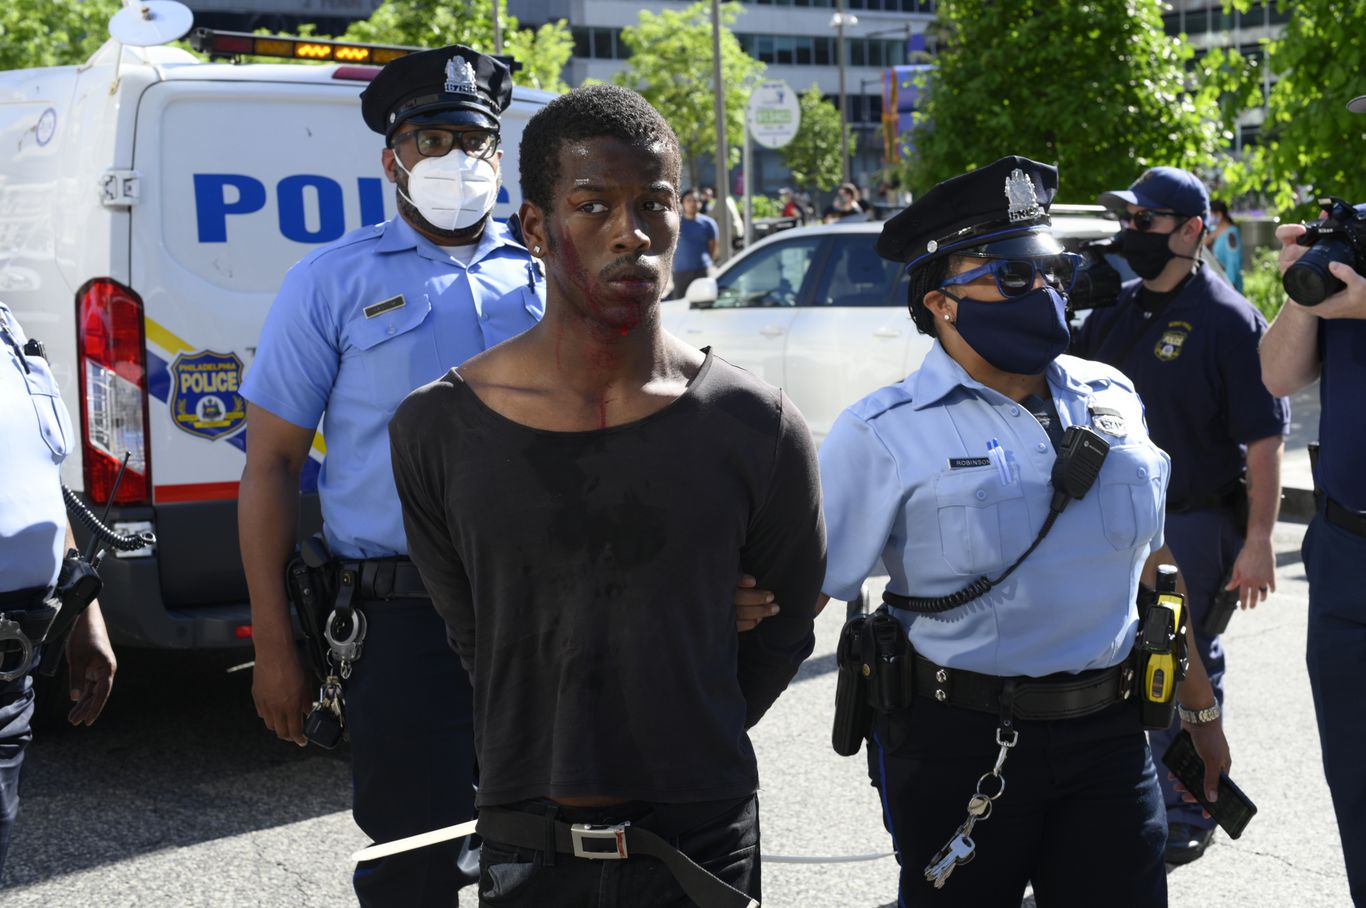 Millions are donated to bail out arrested George Floyd protesters thumbnail